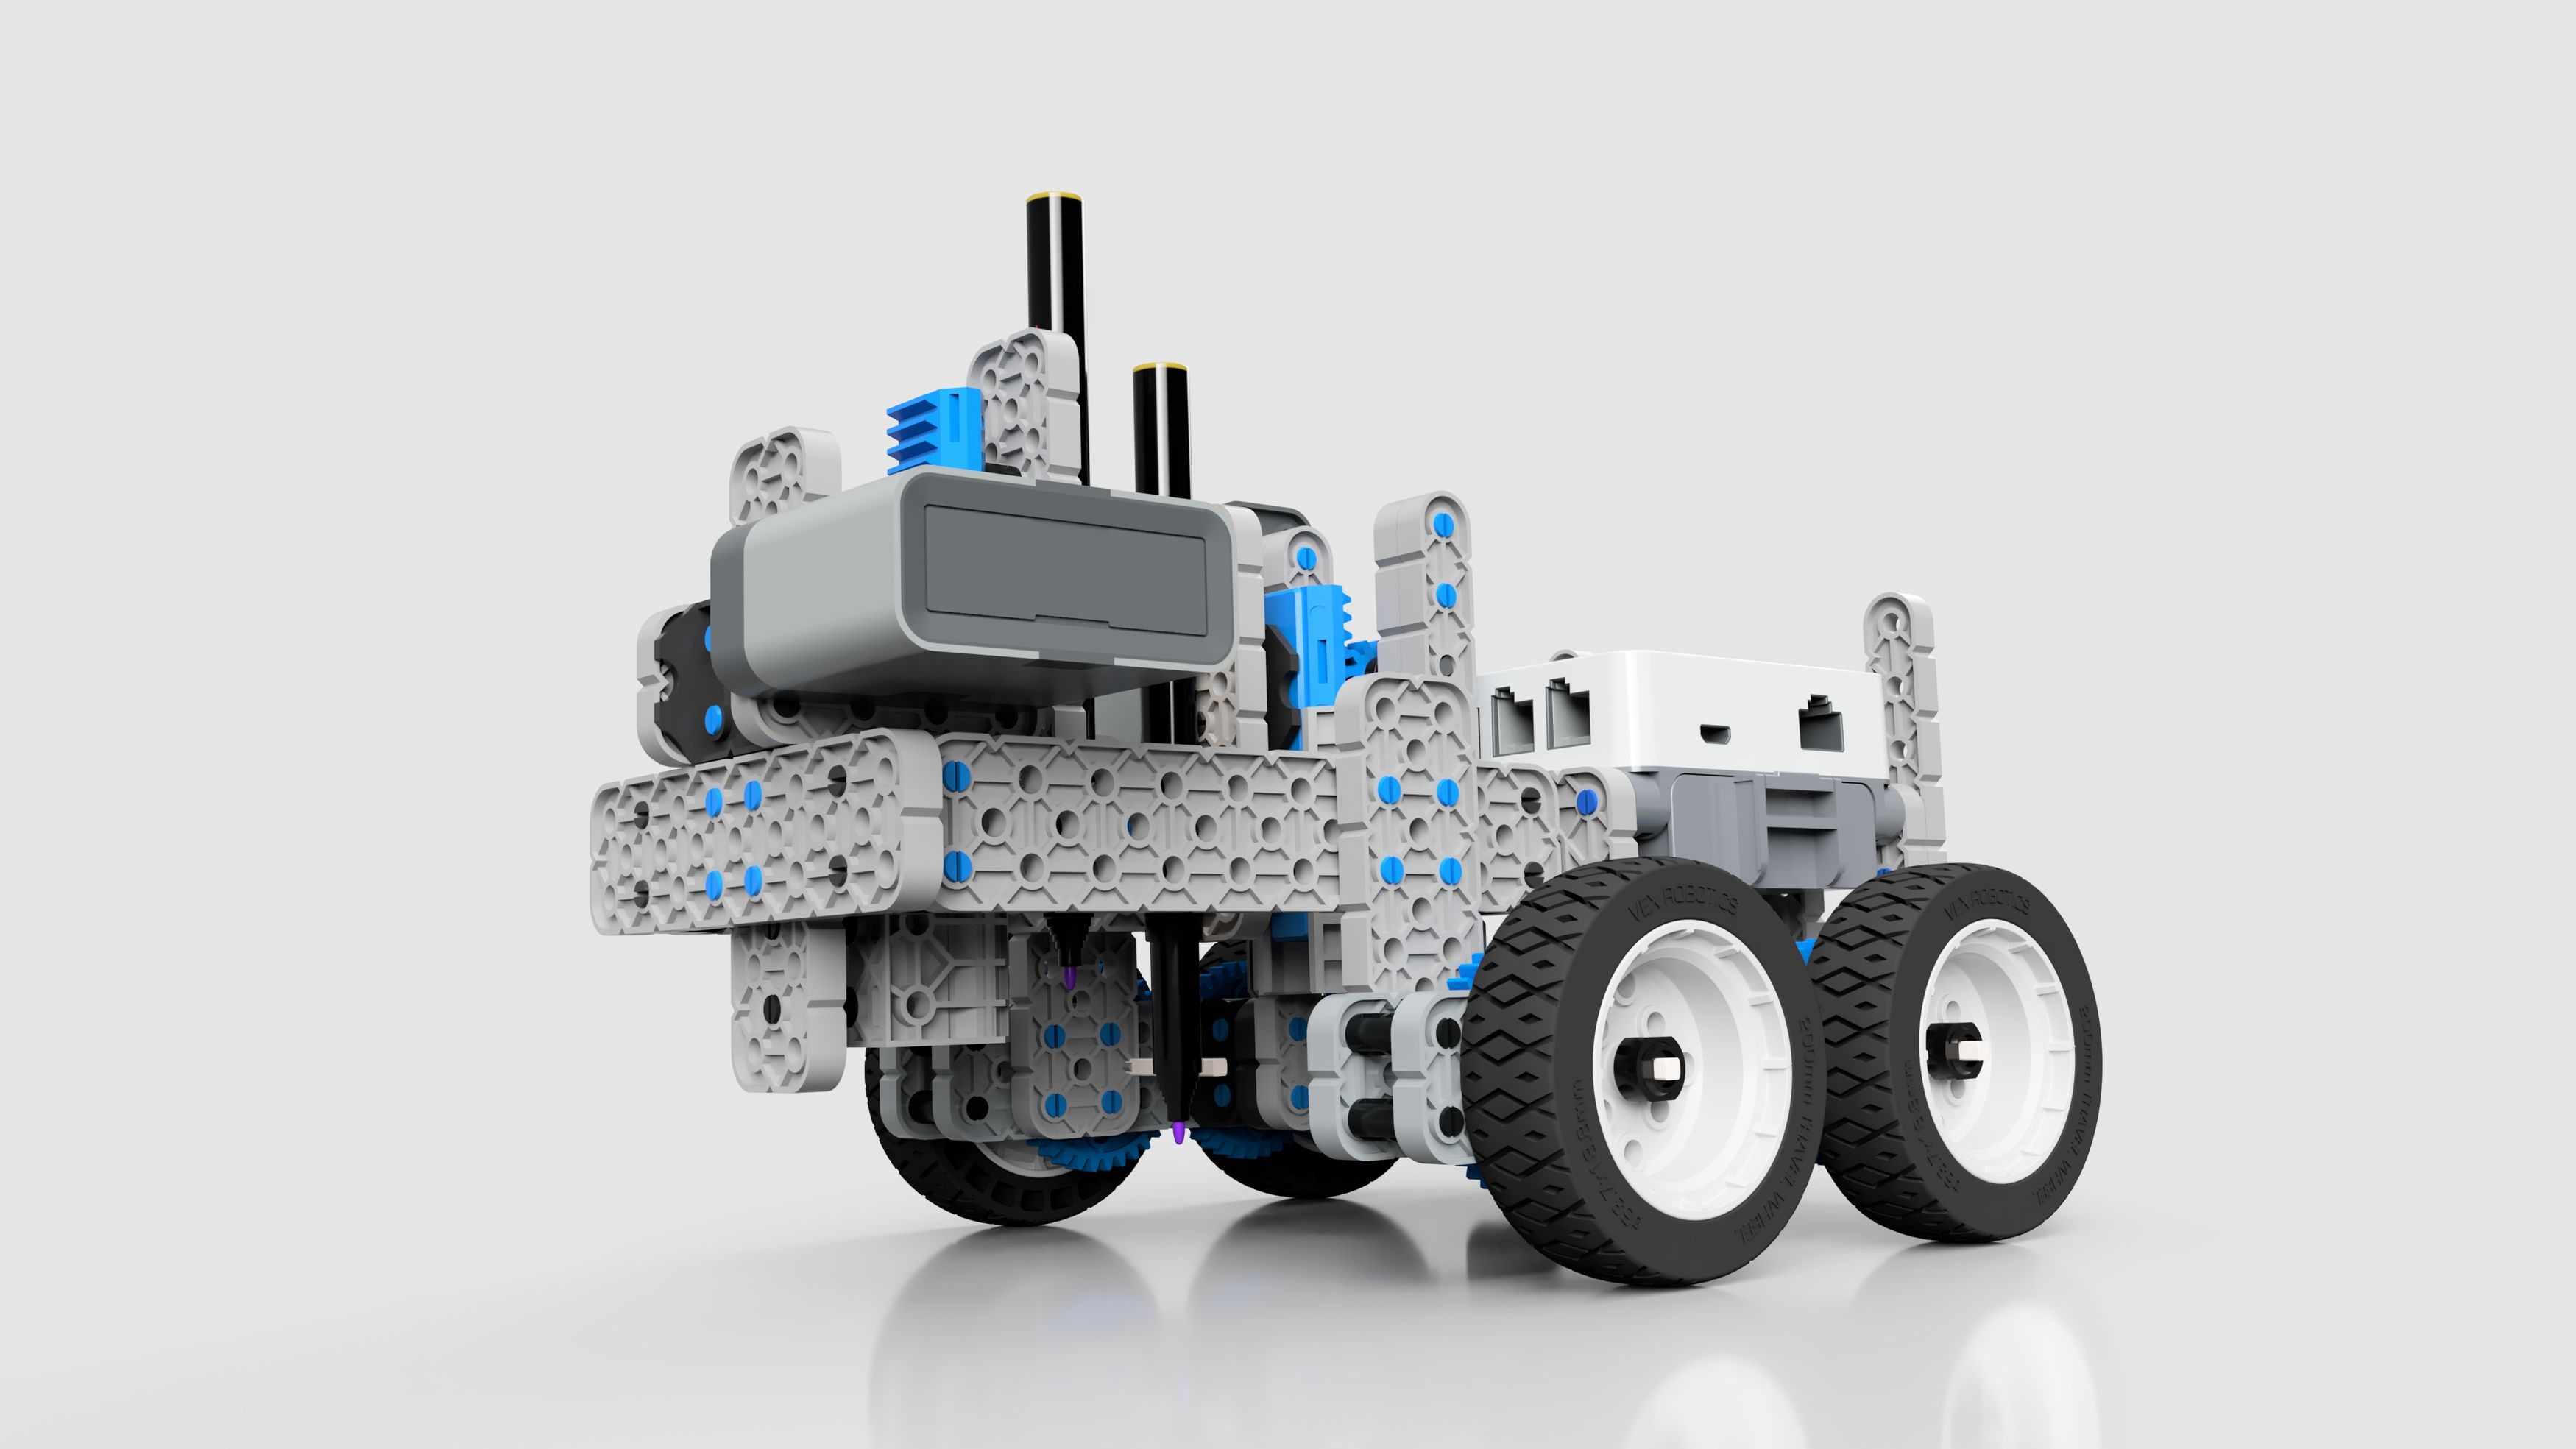 Vex-iq-robot-caneta-2020-may-24-06-09-29pm-000-customizedview23324906111-png-3500-3500